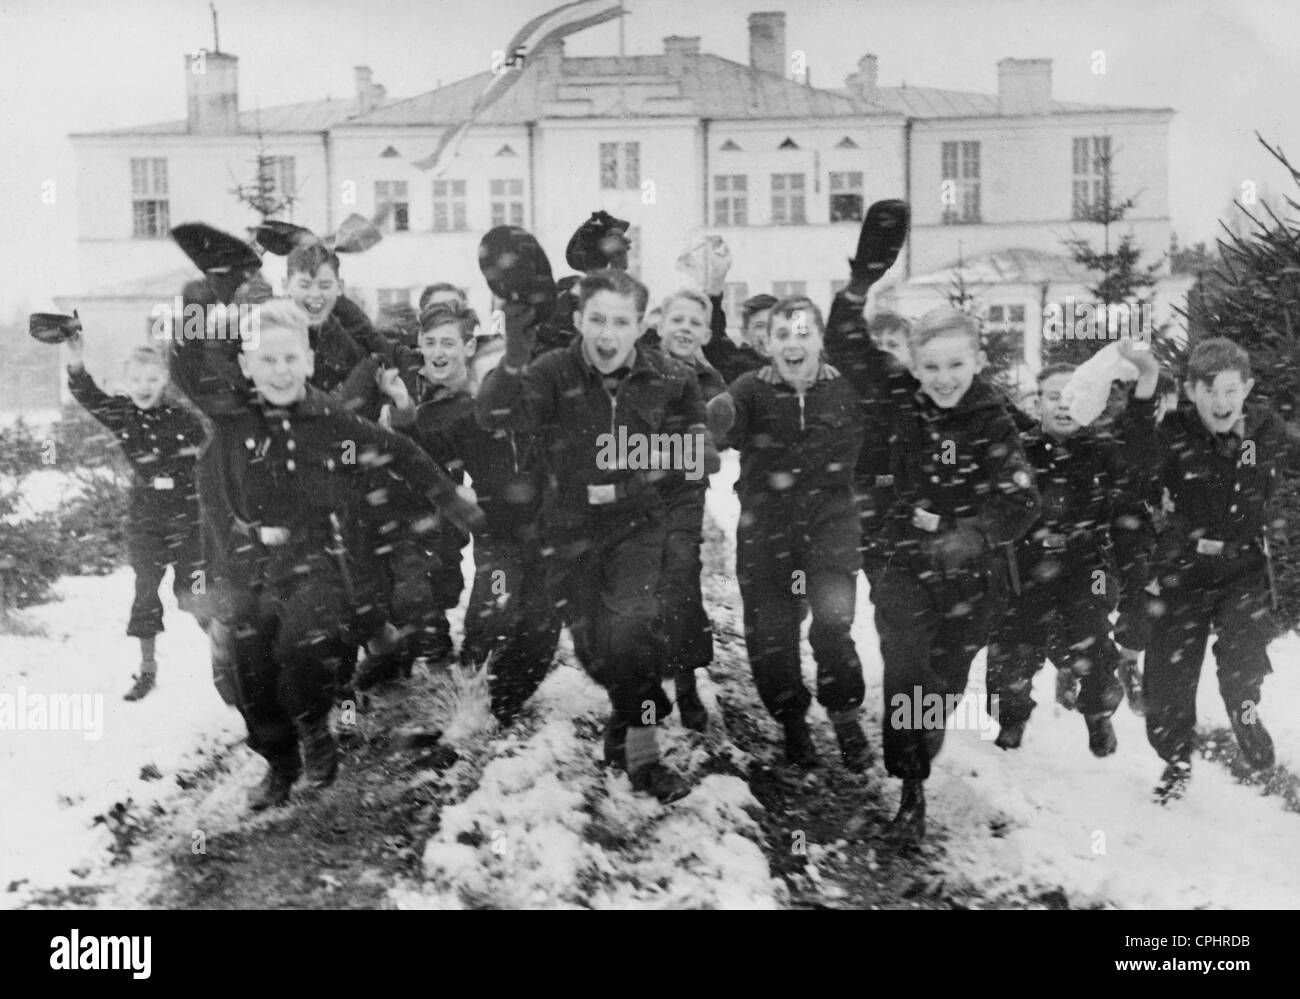 Kinderlandverschickung (sending children to the countryside), 1940 Stock Photo